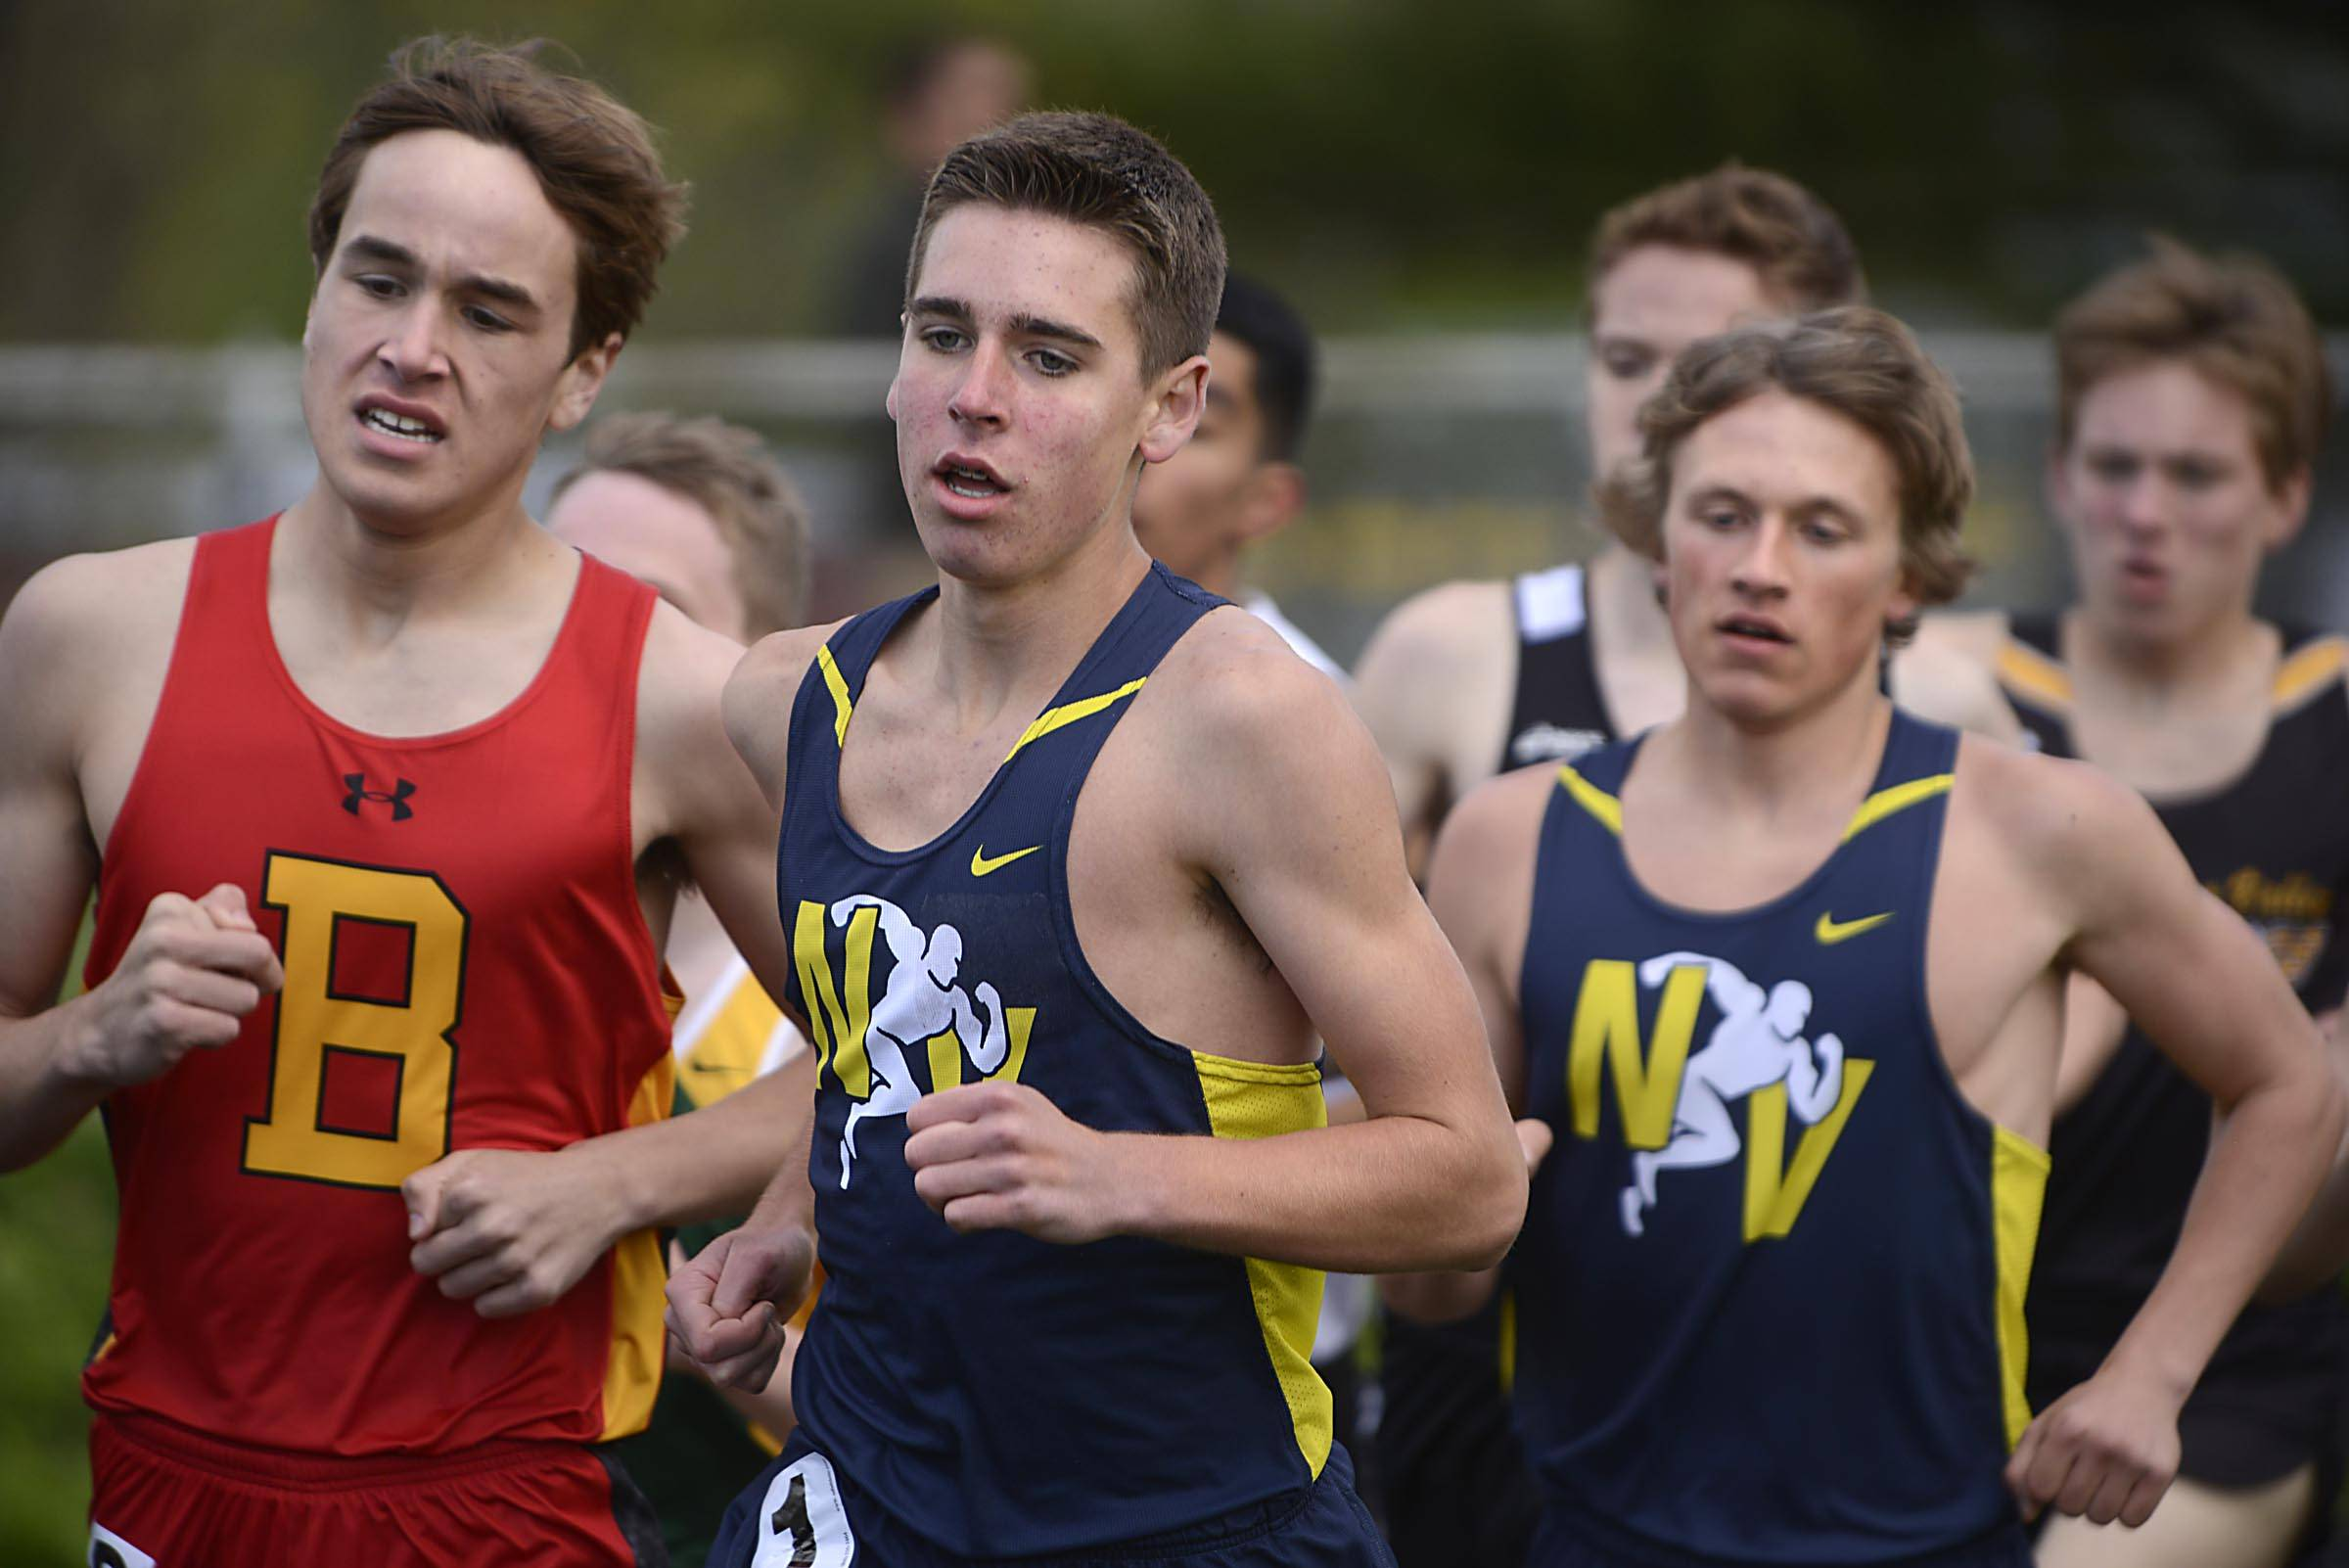 Neuqua Valley's Grayson Jenkins leads Batavia's David Morrison and teammate Daniel Weiss in the 3,200 meter run Thursday at the Upstate Eight Conference boys track meet at Memorial Field at Elgin High School. Jenkins won while Morrison placed second and Weiss ended in fourth place.